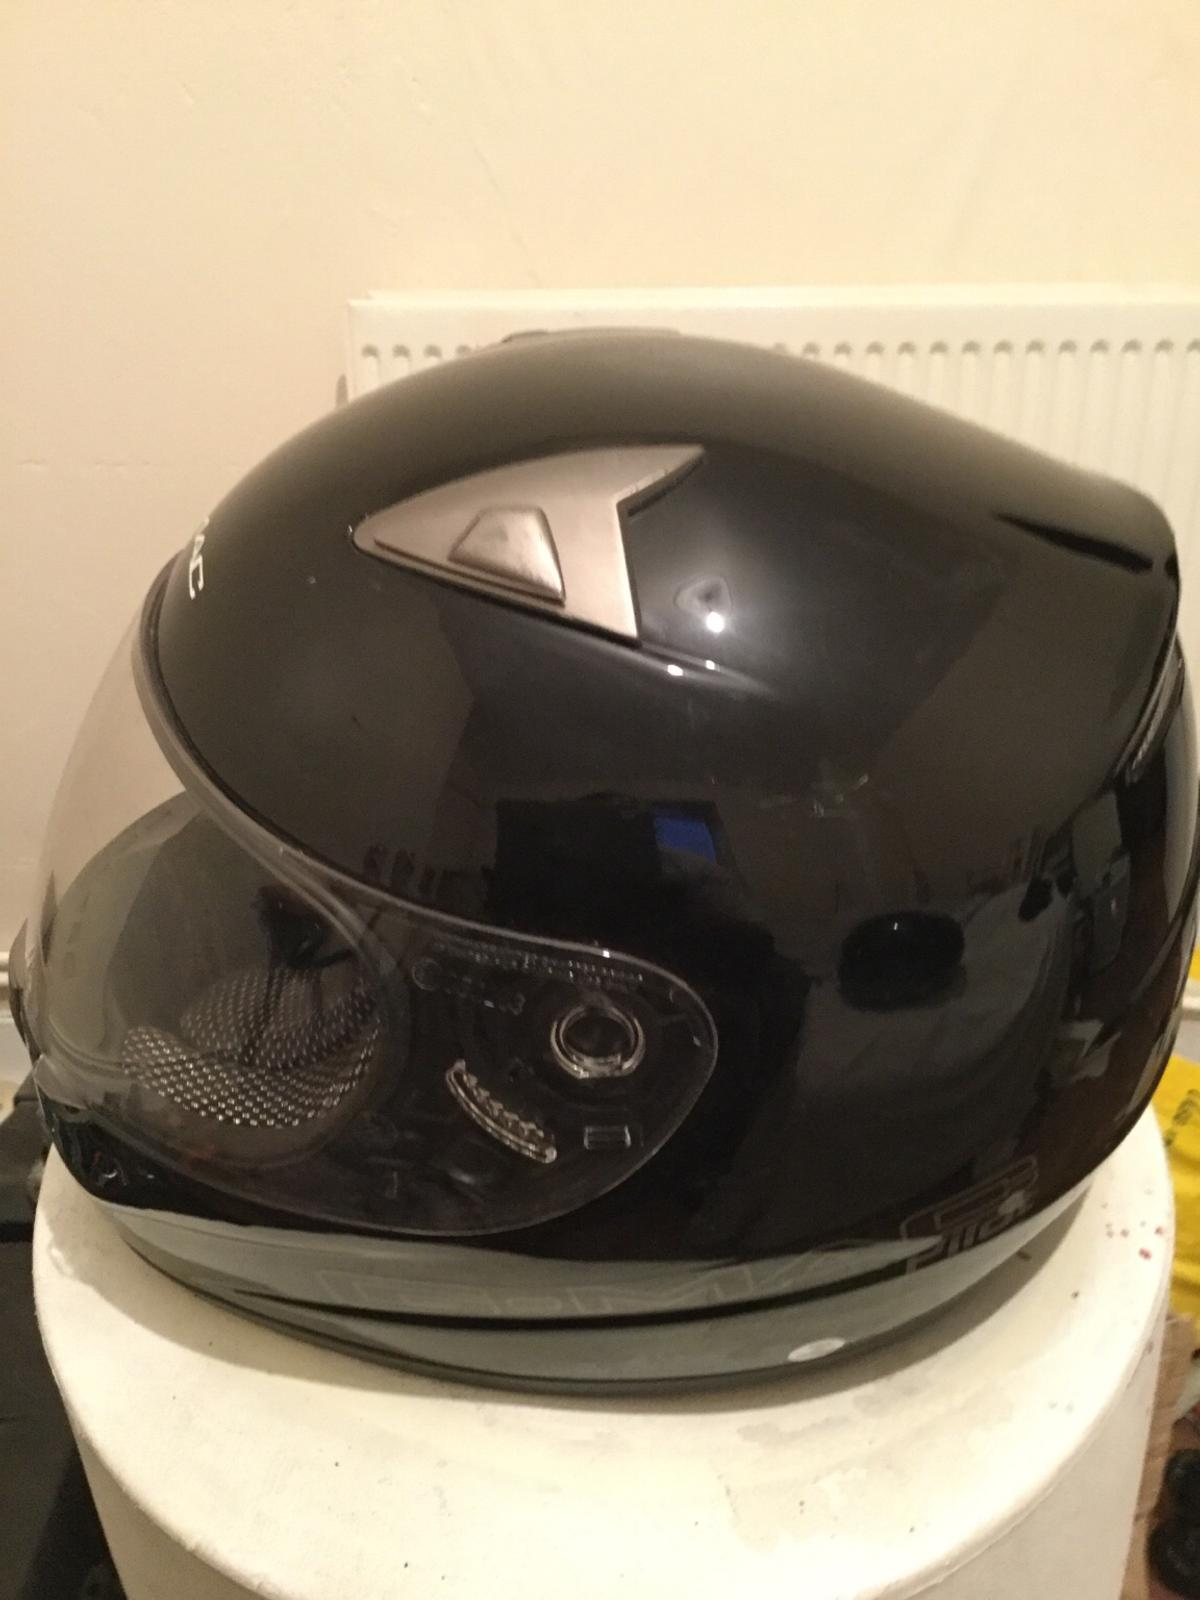 British motorcycle sports this motorcycle helmet is only £20 pounds no post cash and pickup so stop wasting my time about the helmet because some people are just playing games and will be block